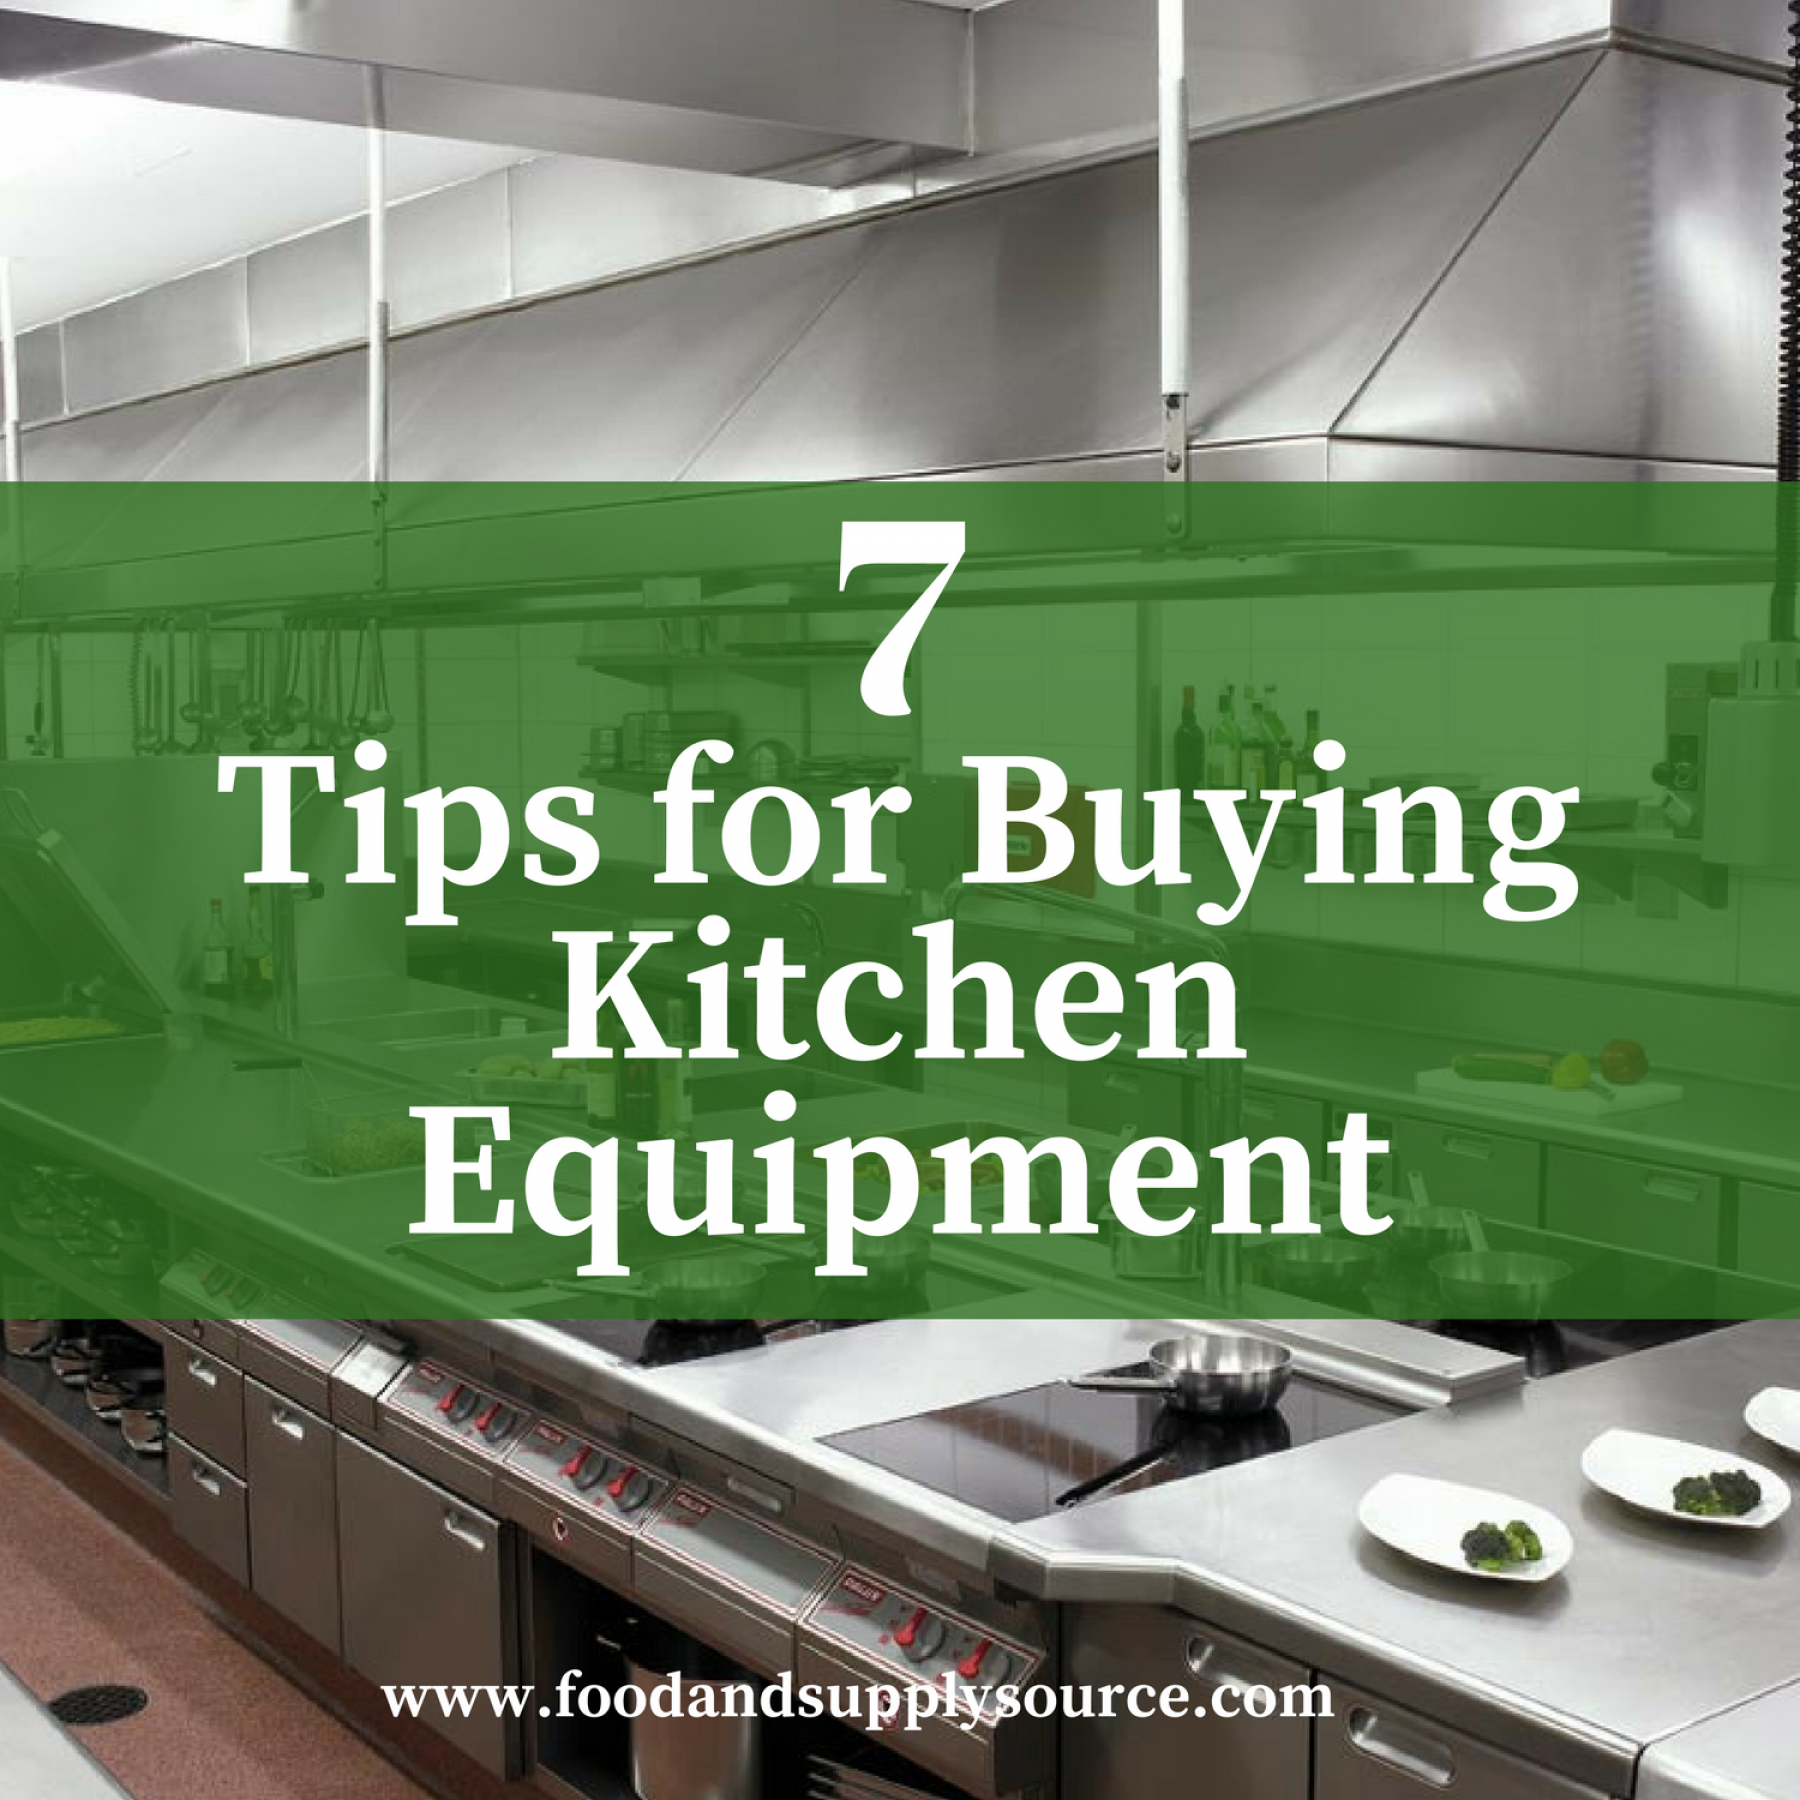 7 Tips for Buying Kitchen Equipment - Food & Supply Source